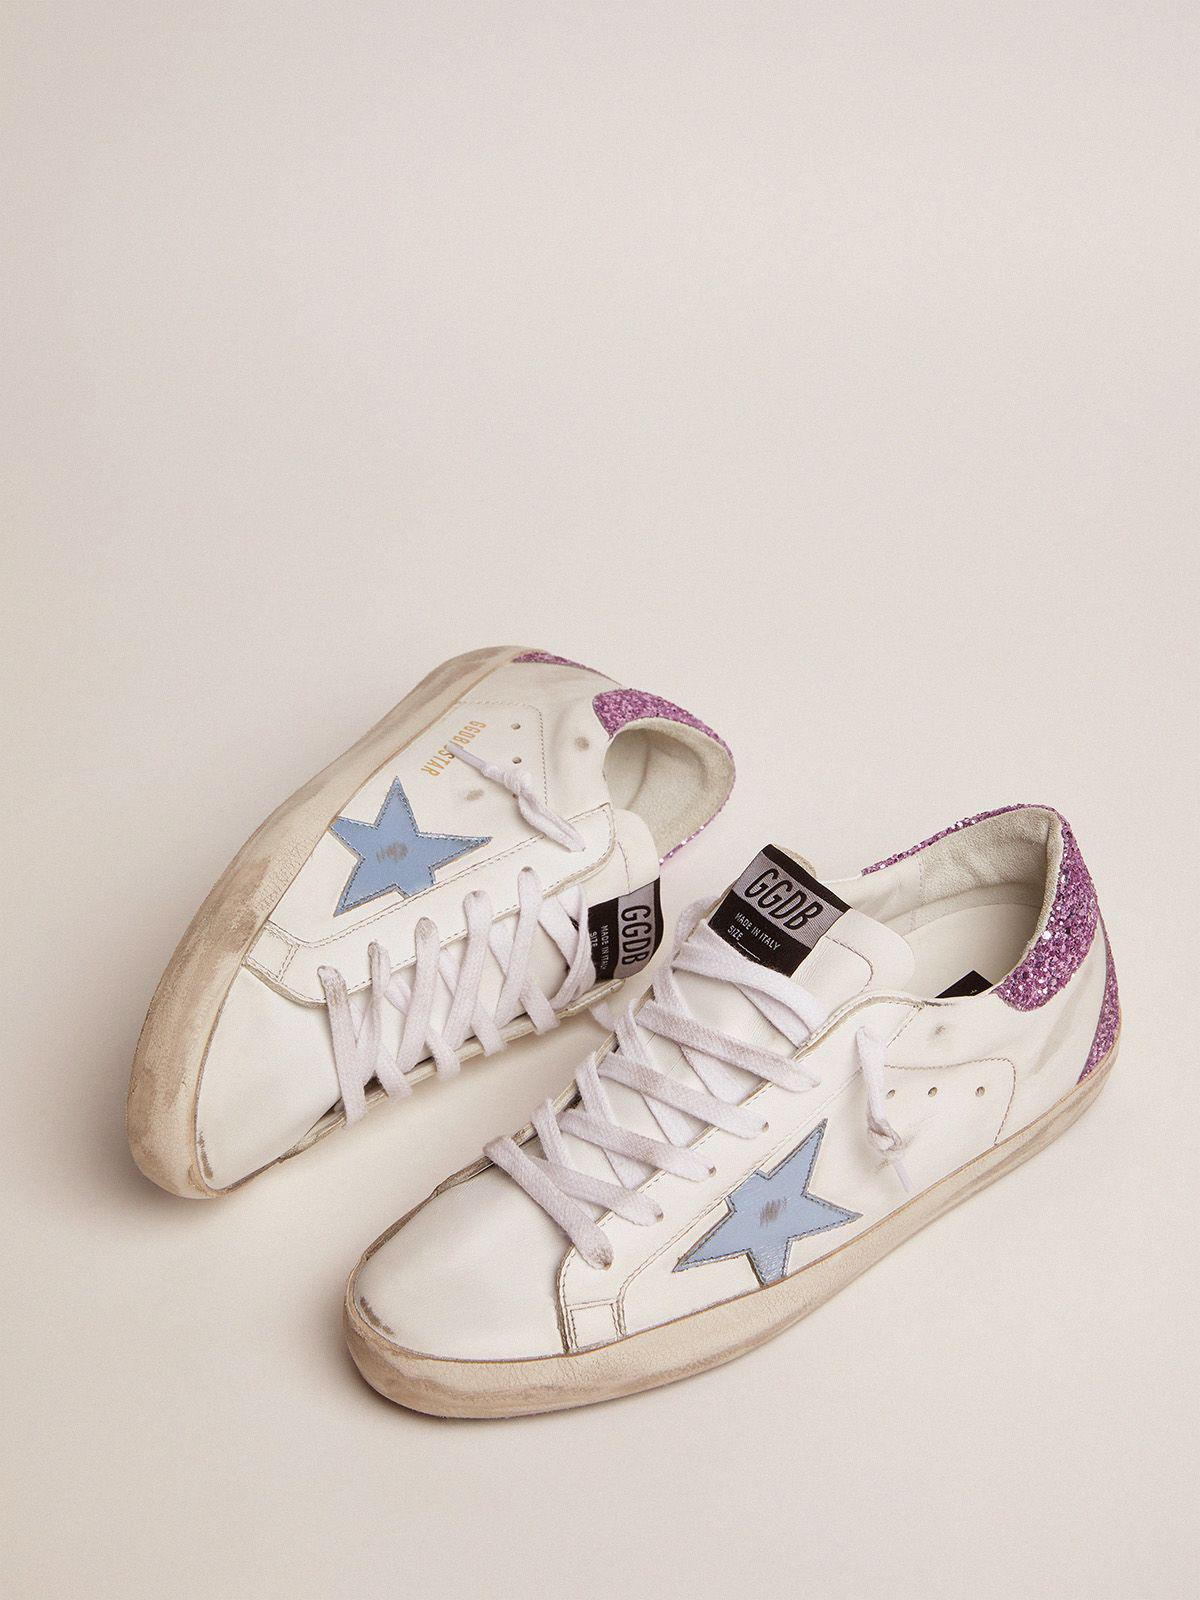 Super-Star sneakers with lavender glitter heel tab and light-blue metallic leather star 1